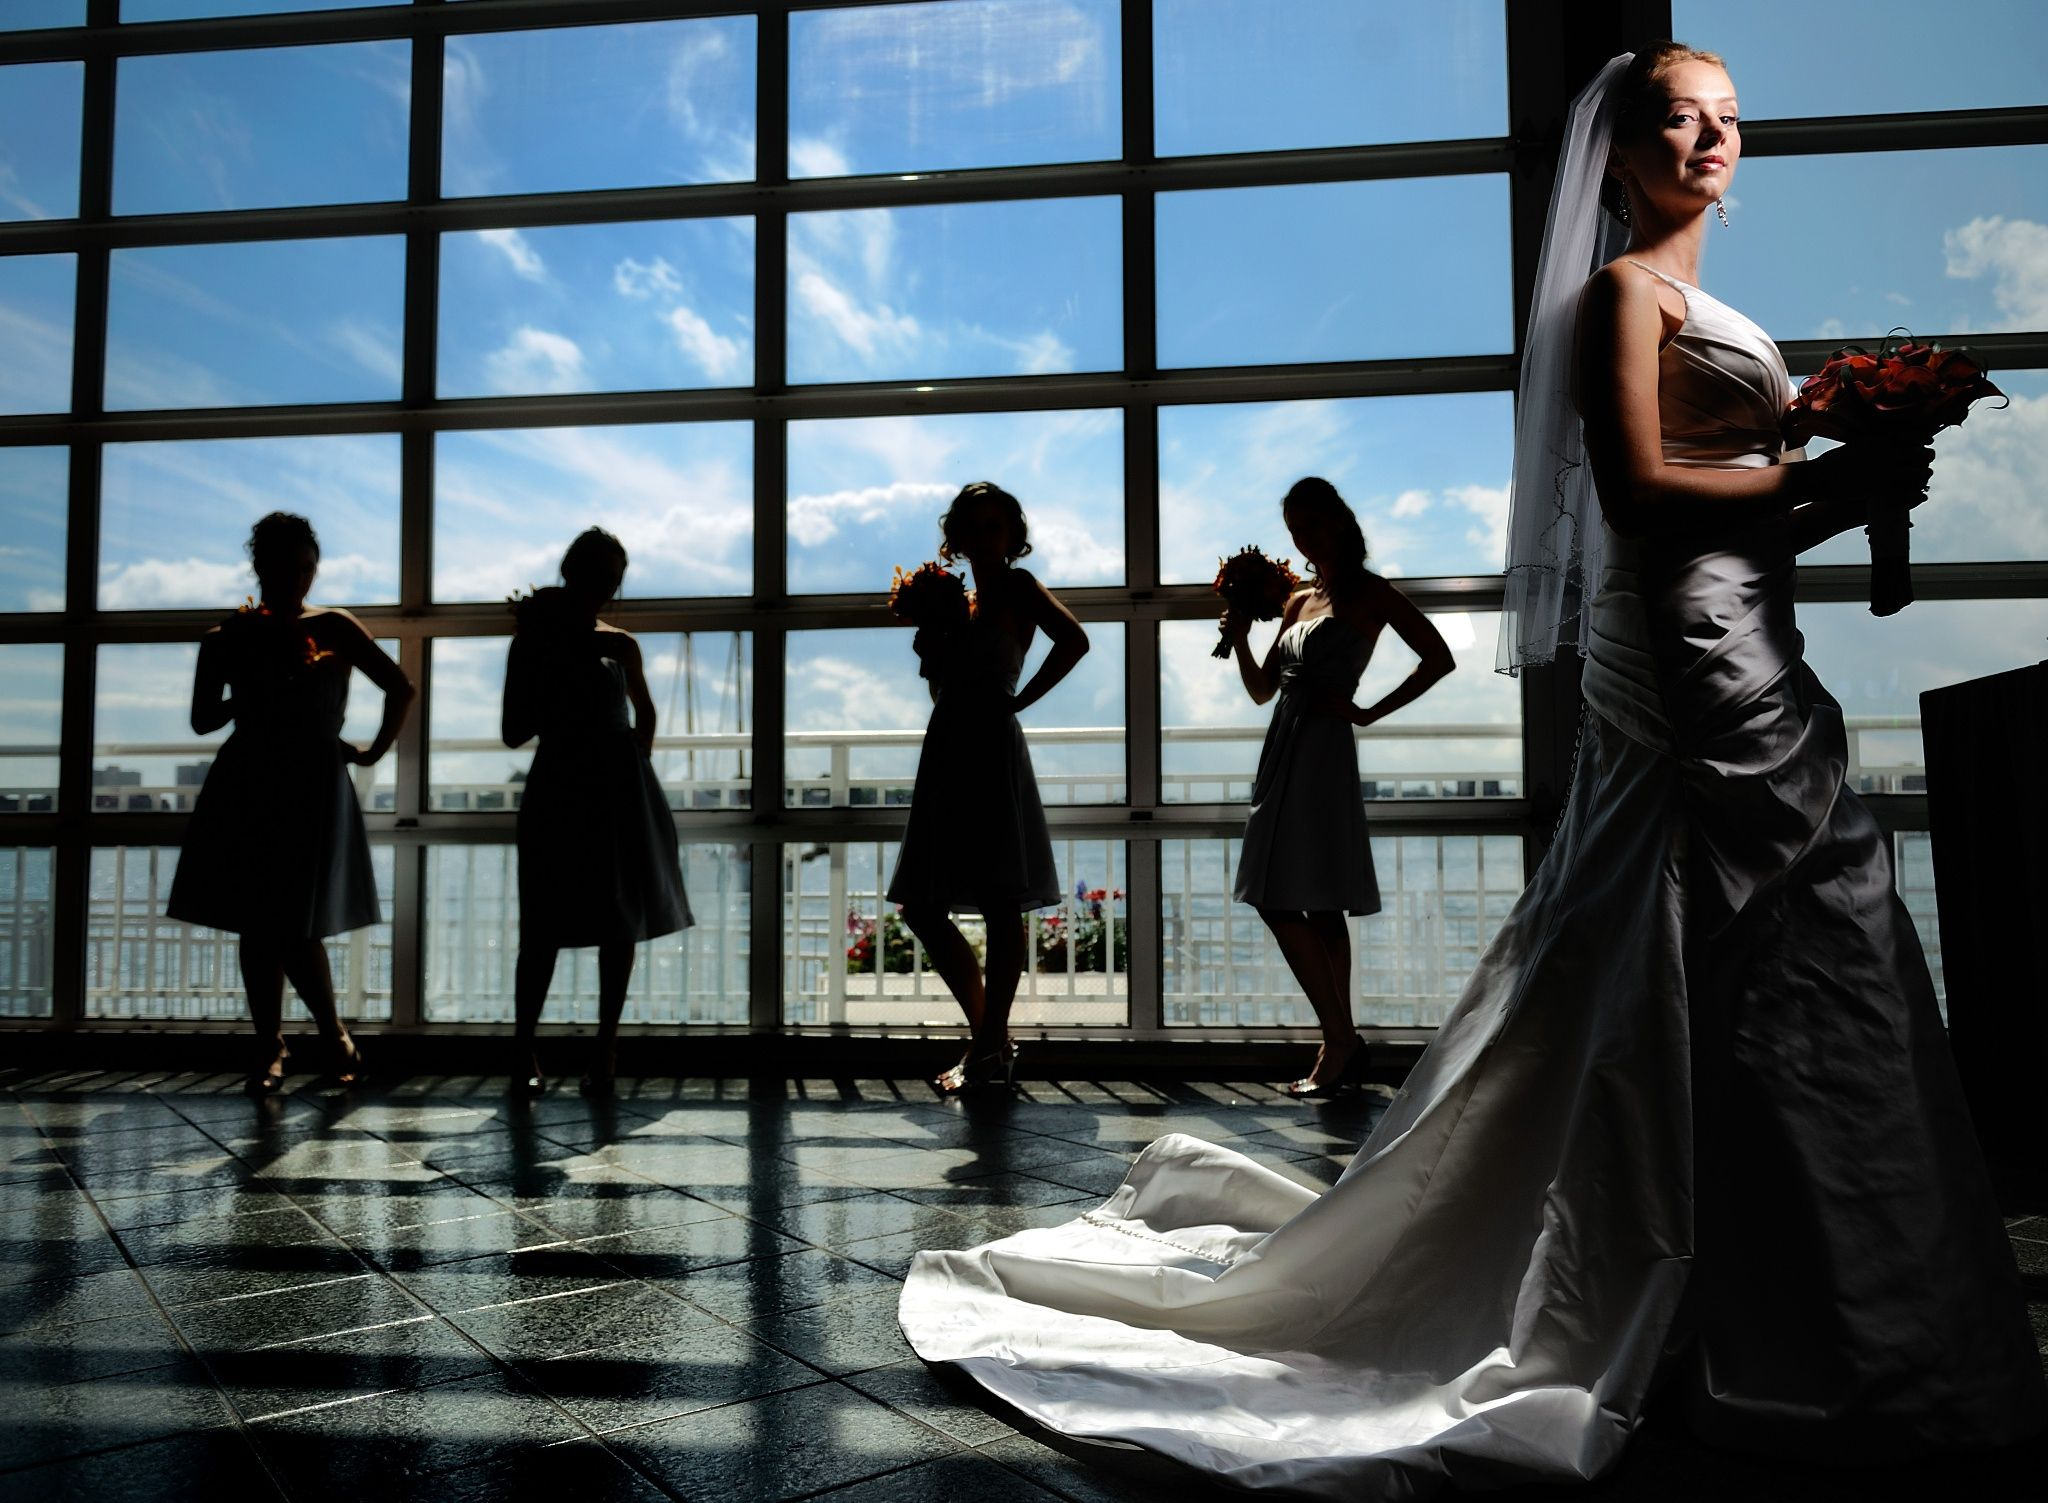 Ryan Brenizer photo of a bride and